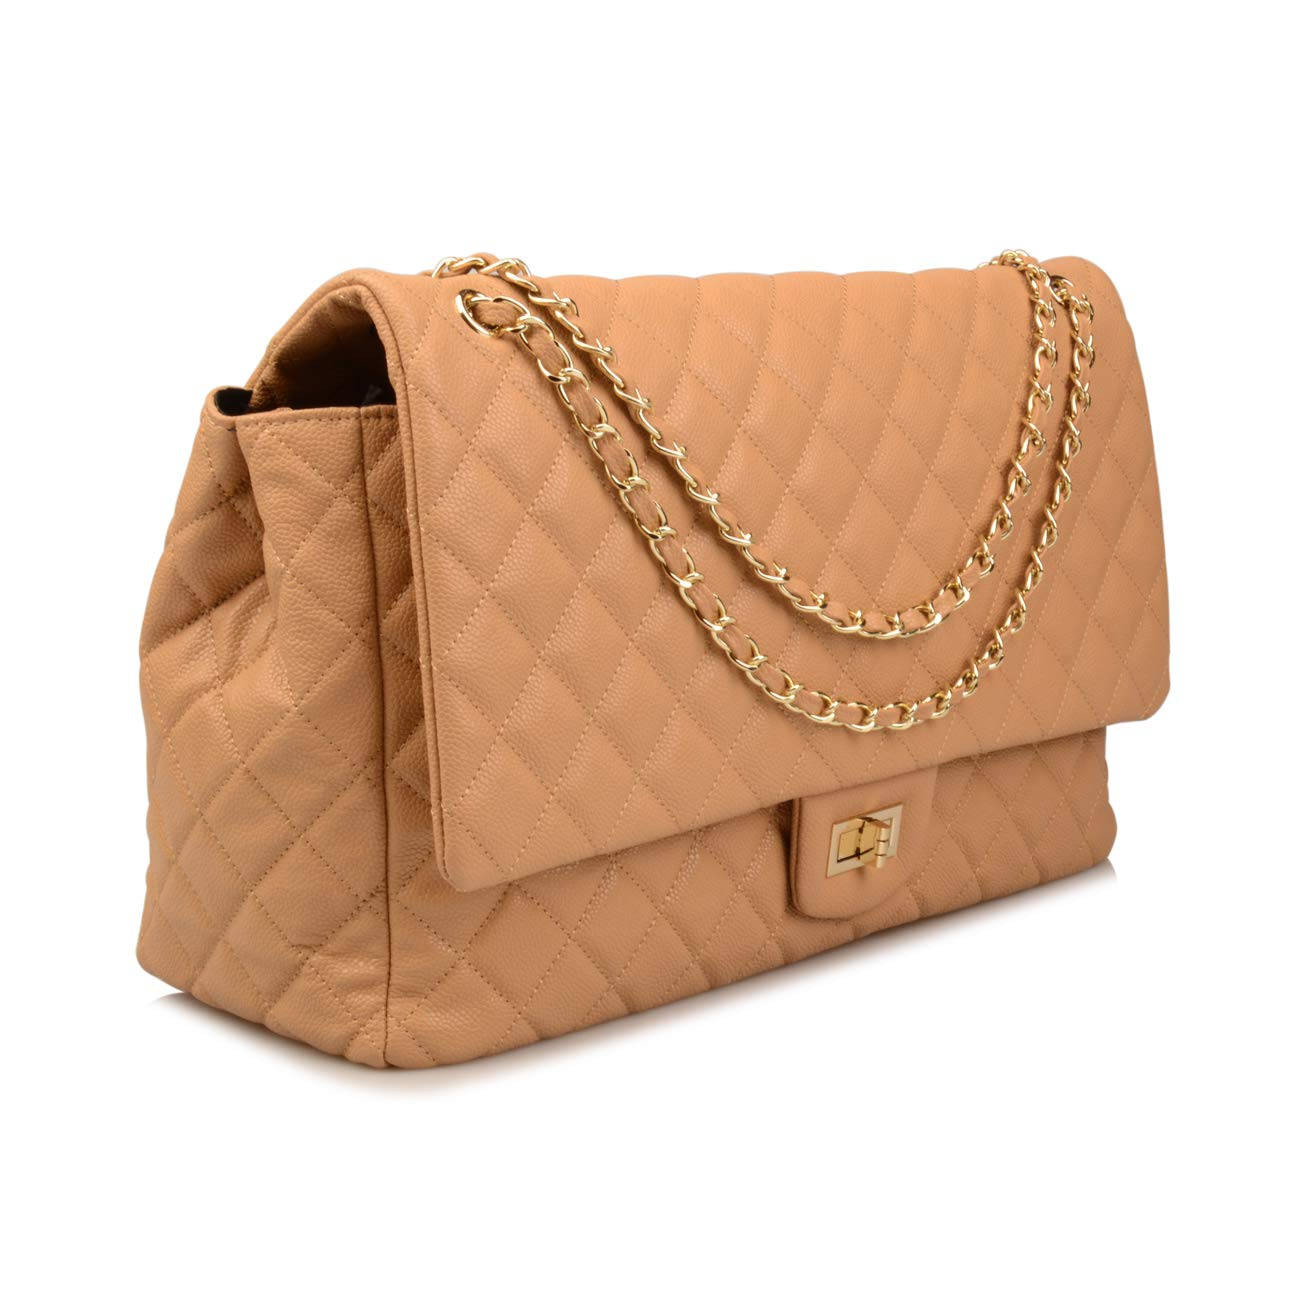 Ainifeel Women's Genuine Leather Oversize Quilted Flap Handbag Large Travelling Tote Bag Luggage Holdall (Oversize, Apricot (gold hardware)) by Ainifeel Quilted&Chain Strap Collection (Image #2)